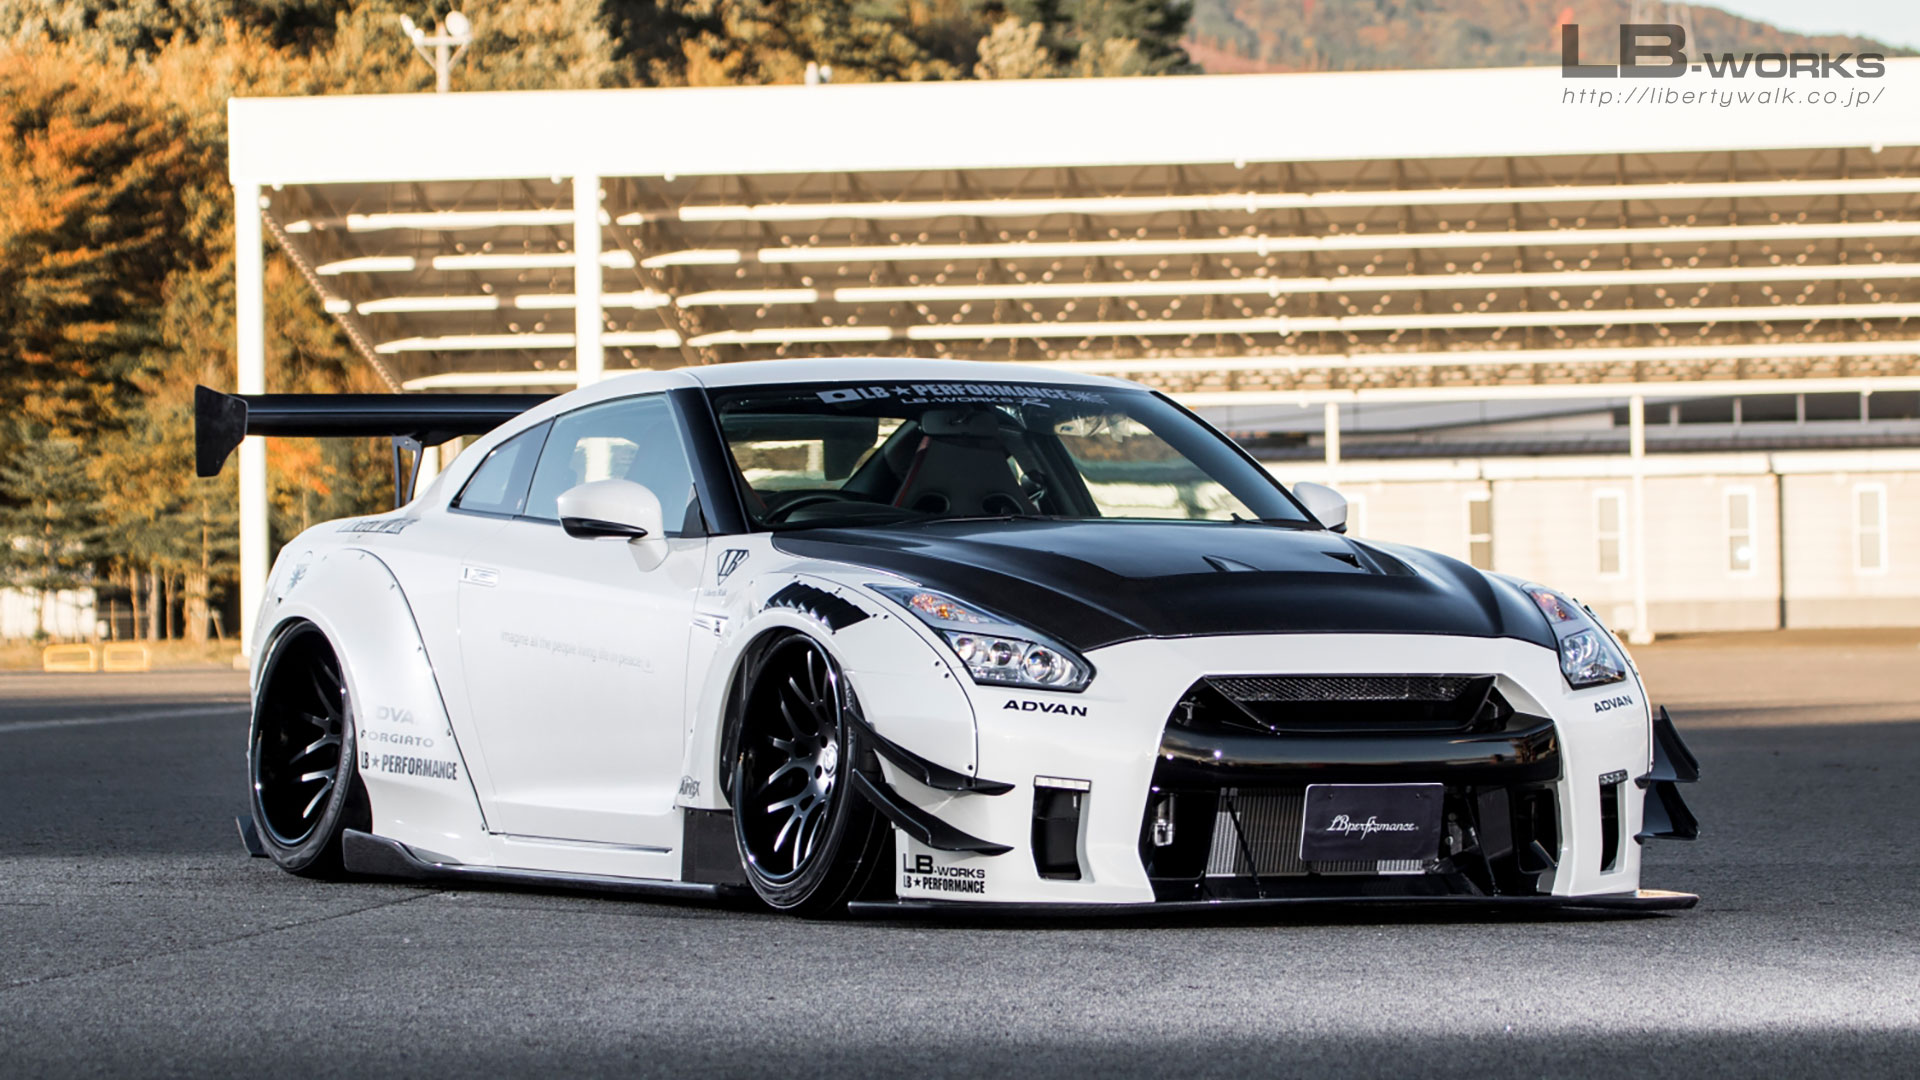 __ARY5424 LB-WORKS NISSAN GT-R R35 type 2